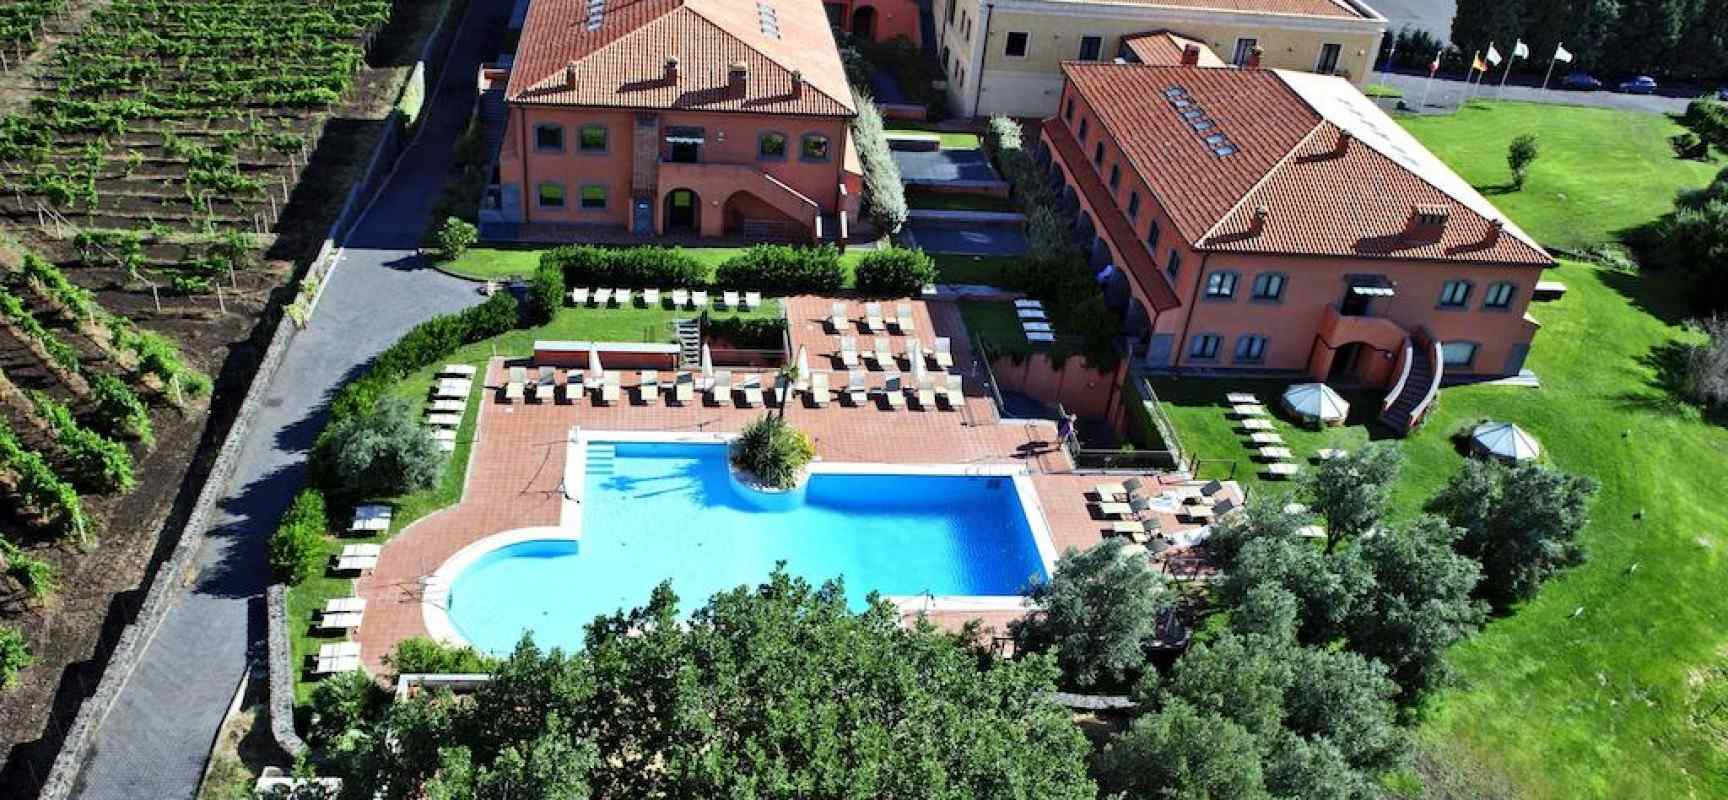 OFFERTA EPIFANIA ETNA GOLF E RESORT